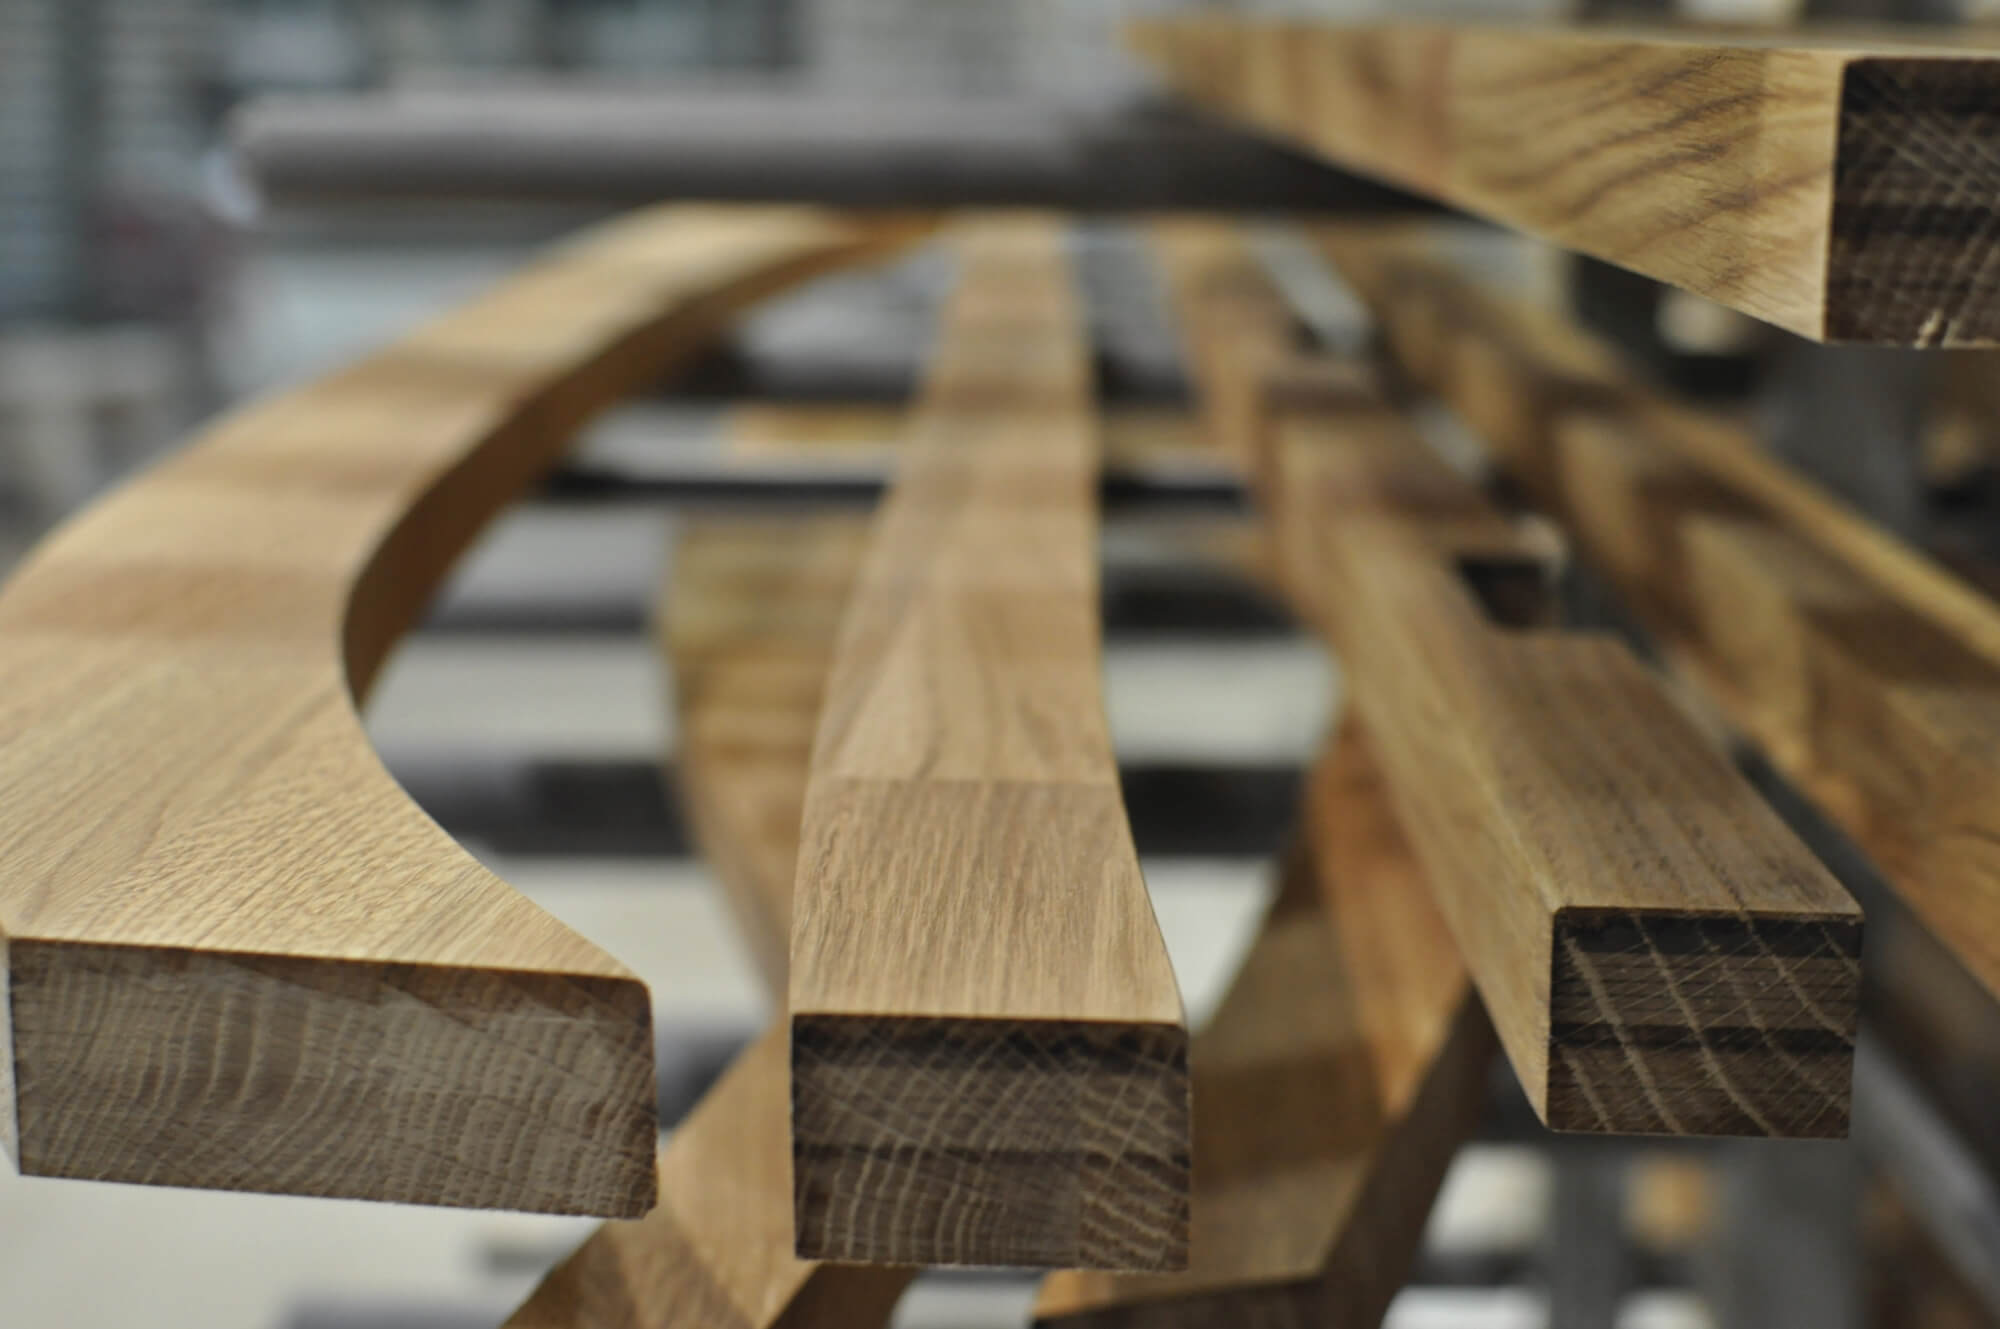 Detail images of curved wood pieces.